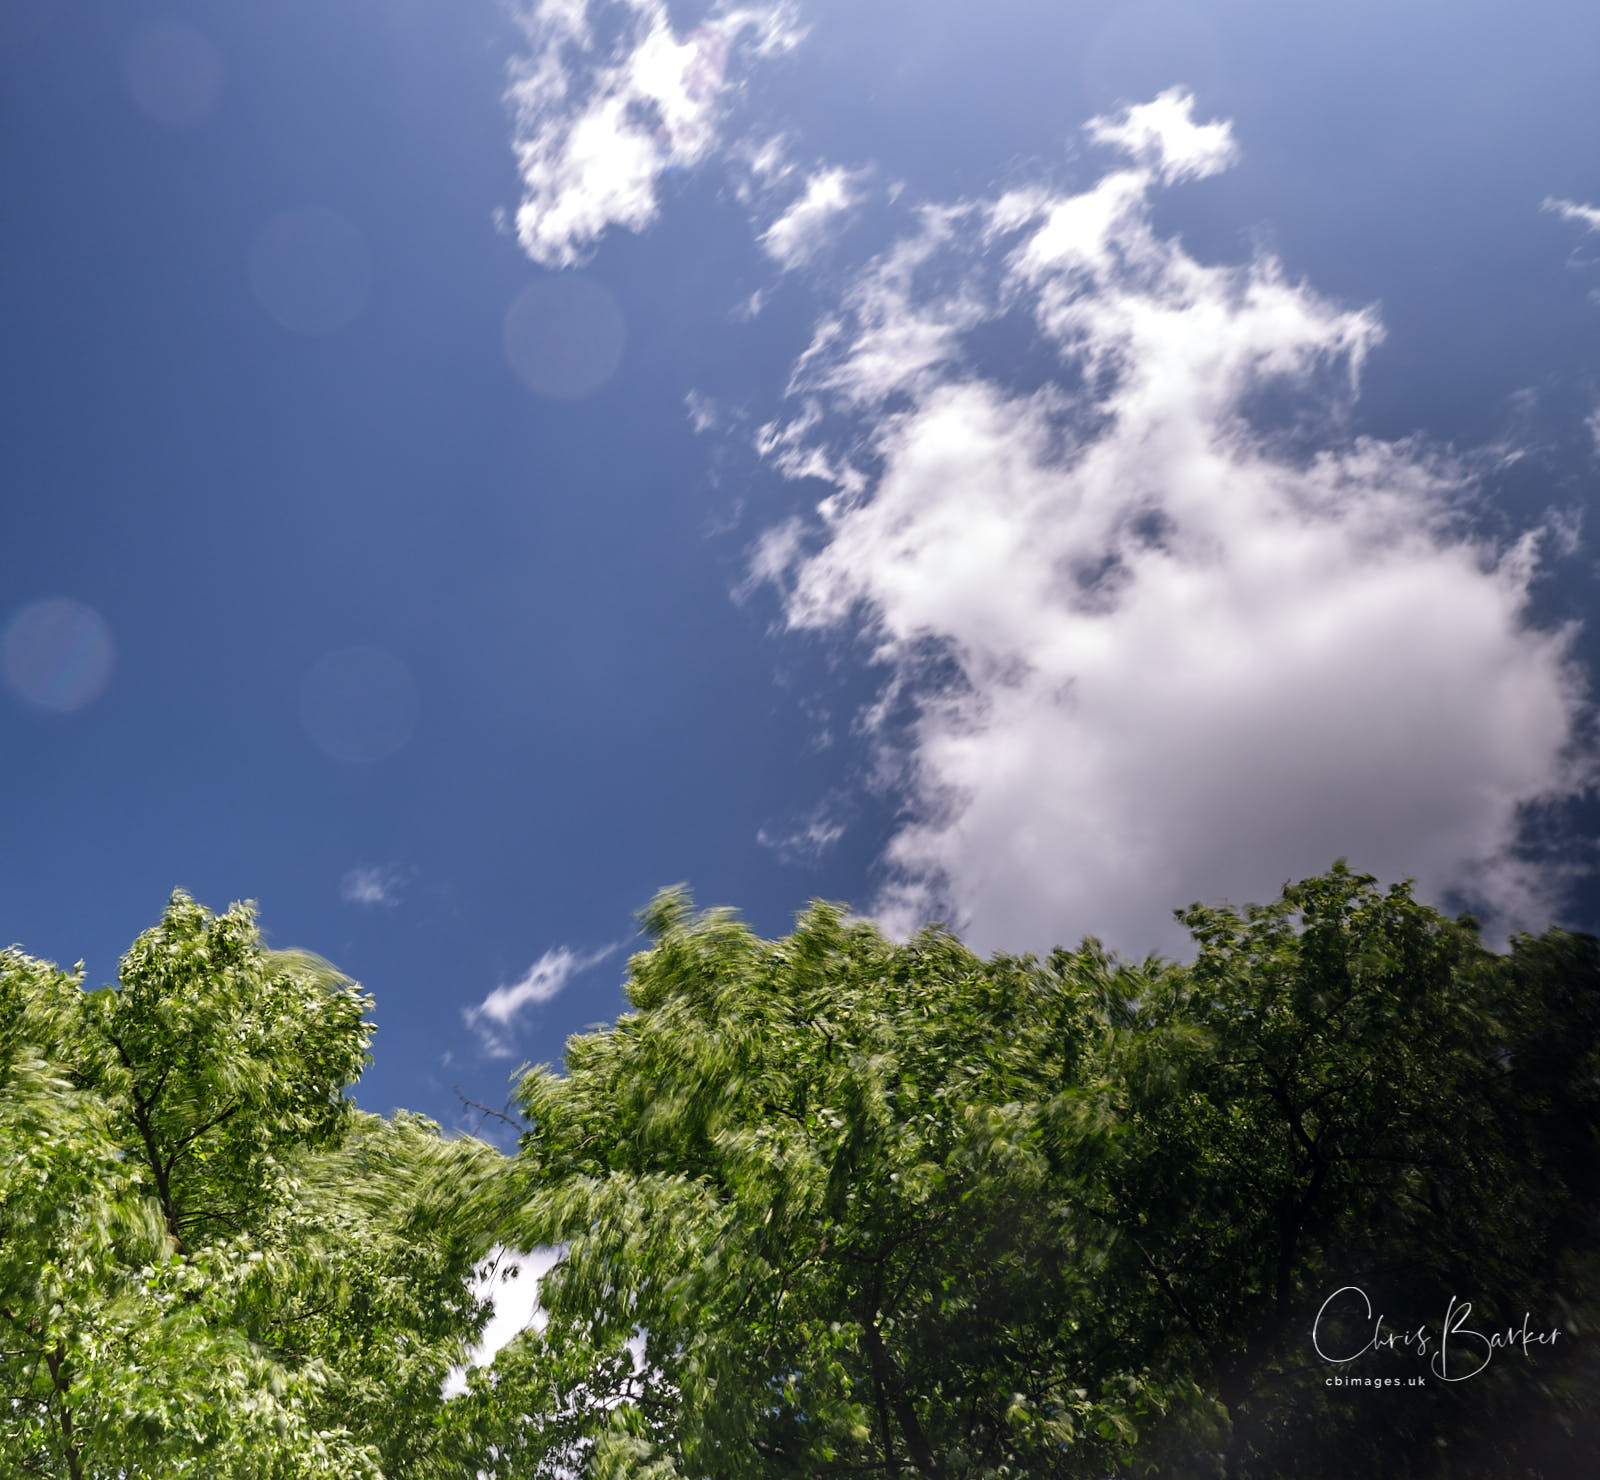 Sky and trees in motion